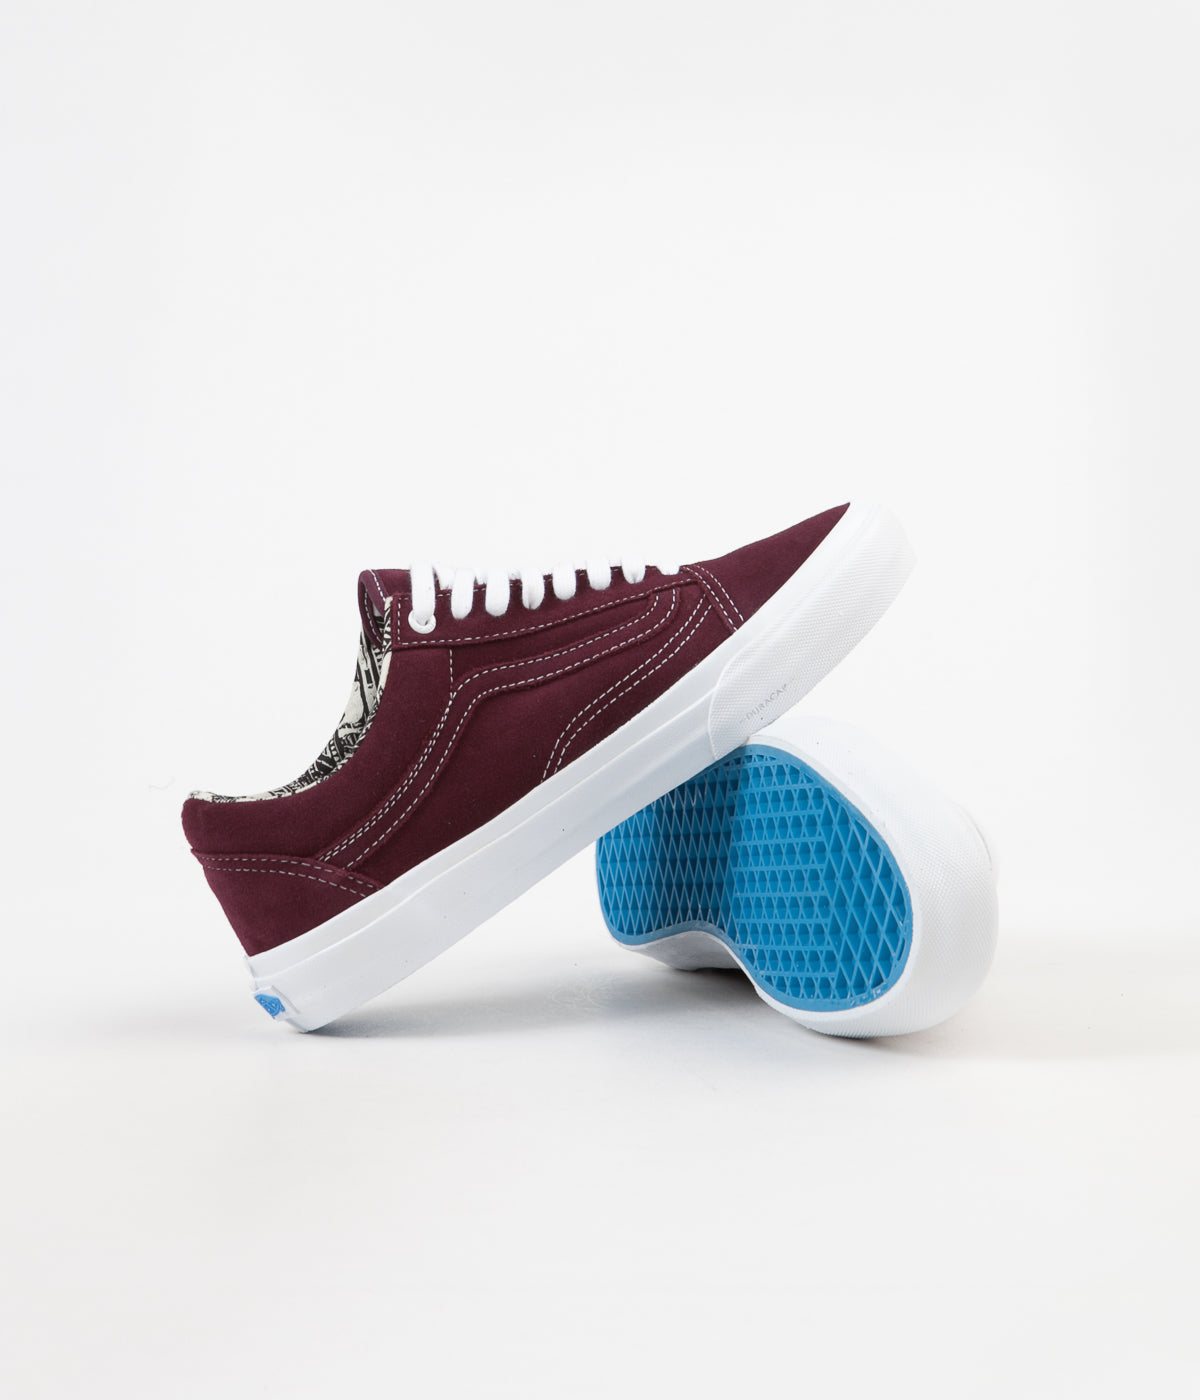 Vans Old Skool Pro (Ray Barbee) Shoes - OG Burgundy